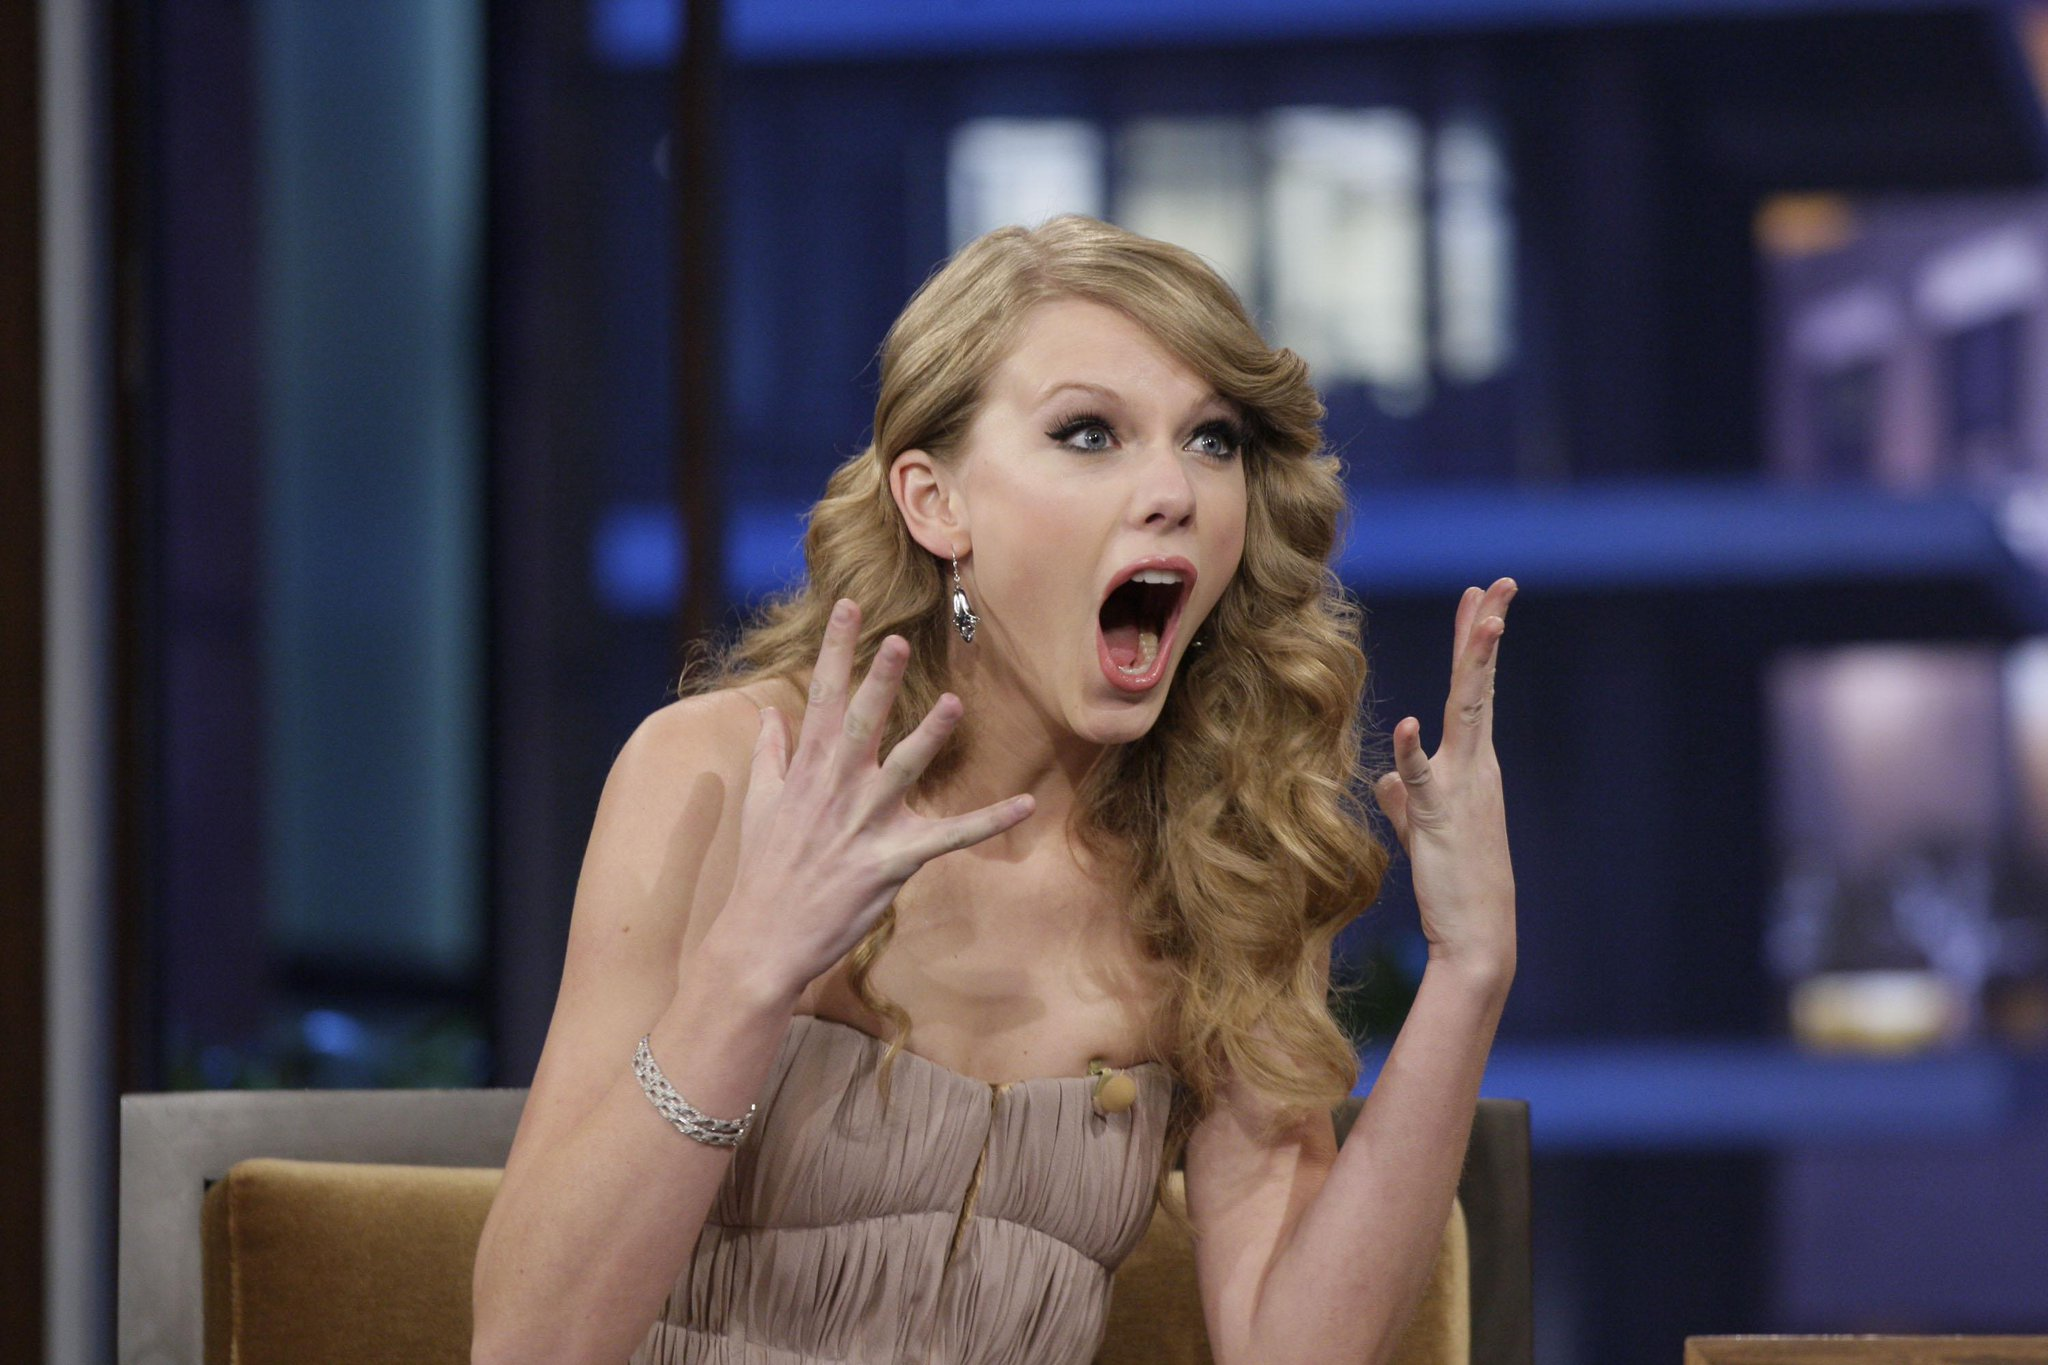 You're Gonna Lose It When You Hear Who Taylor Swift Just Added to Her 1989 Tour http://t.co/ua80HpeXI4 http://t.co/IUXZbXqQcm